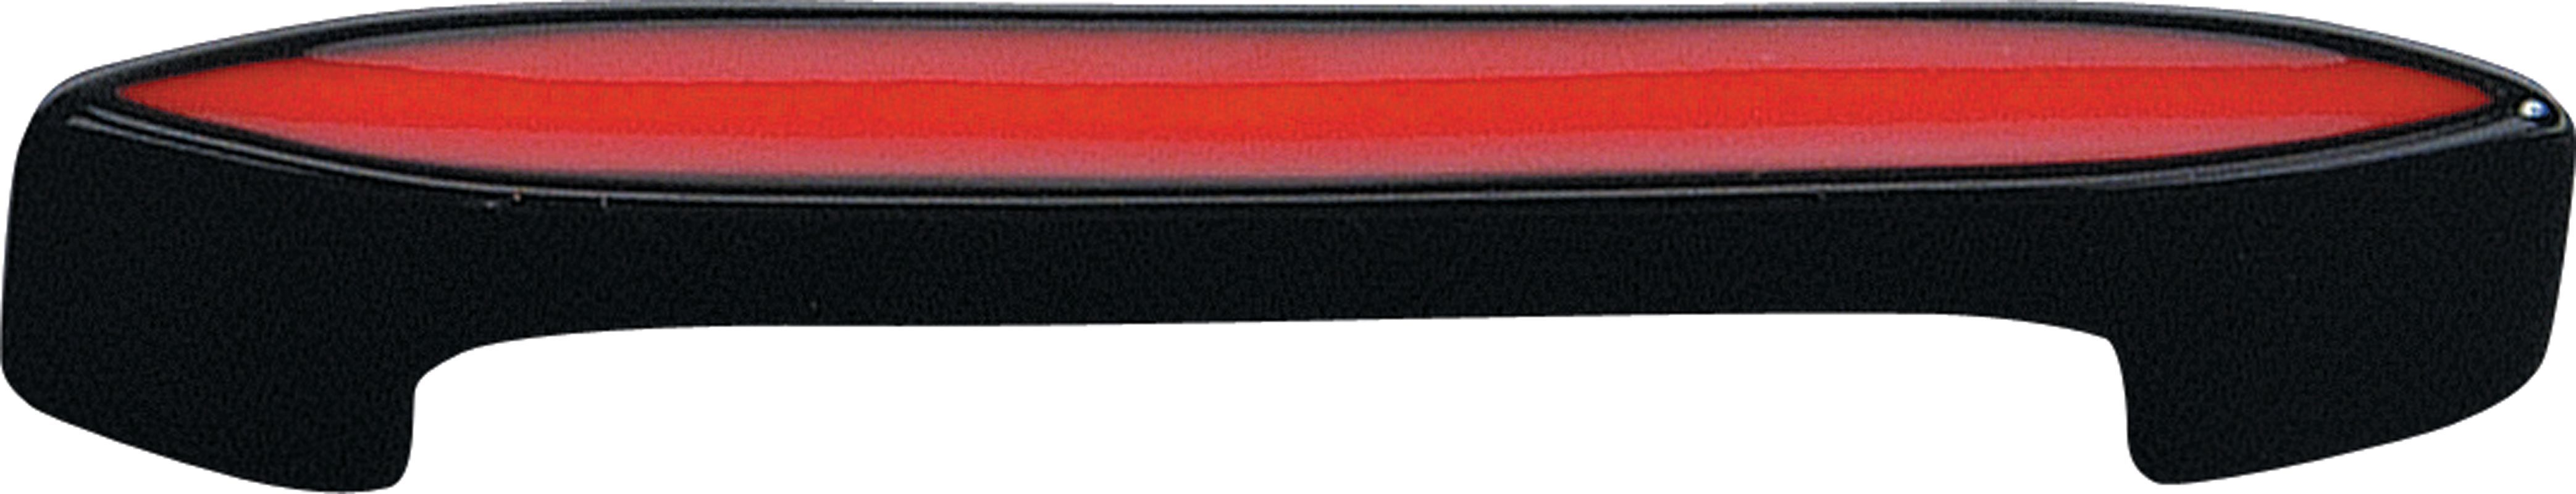 Atlas Homewares 3133 Indochine 4 Inch Center To Center Handle Cabinet Pull Red  Cabinet Hardware Pulls